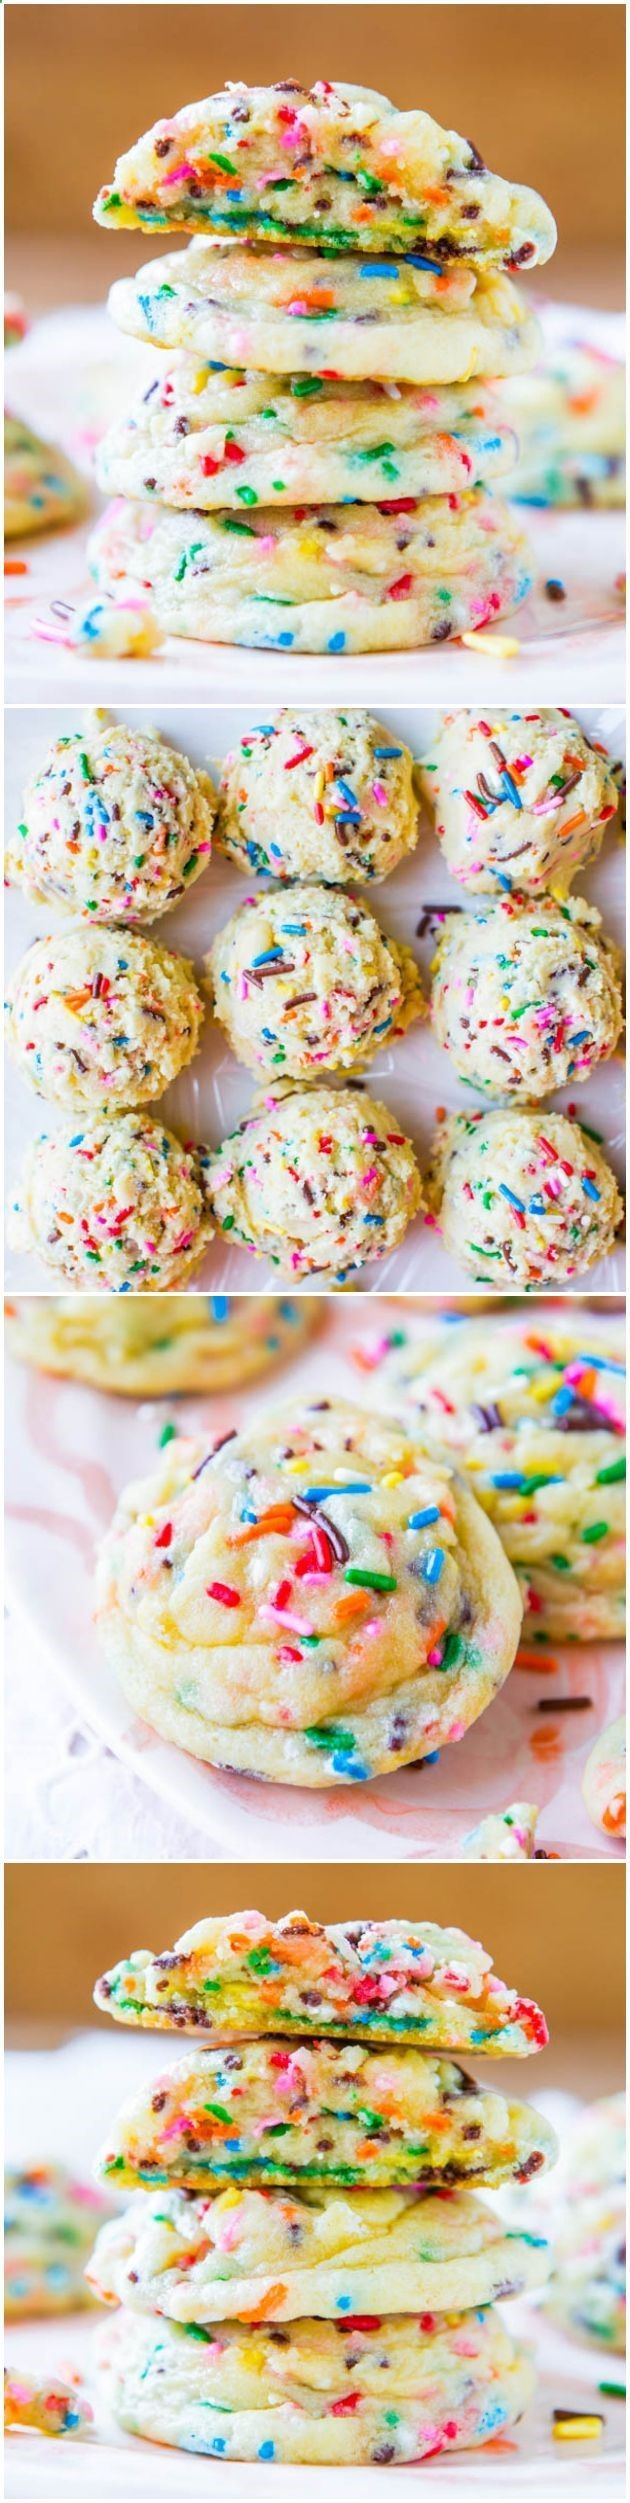 Softbatch Funfetti Sugar Cookies - Move over cake mix. These easy, super soft cookies are from scratch  loaded with sprinkles!